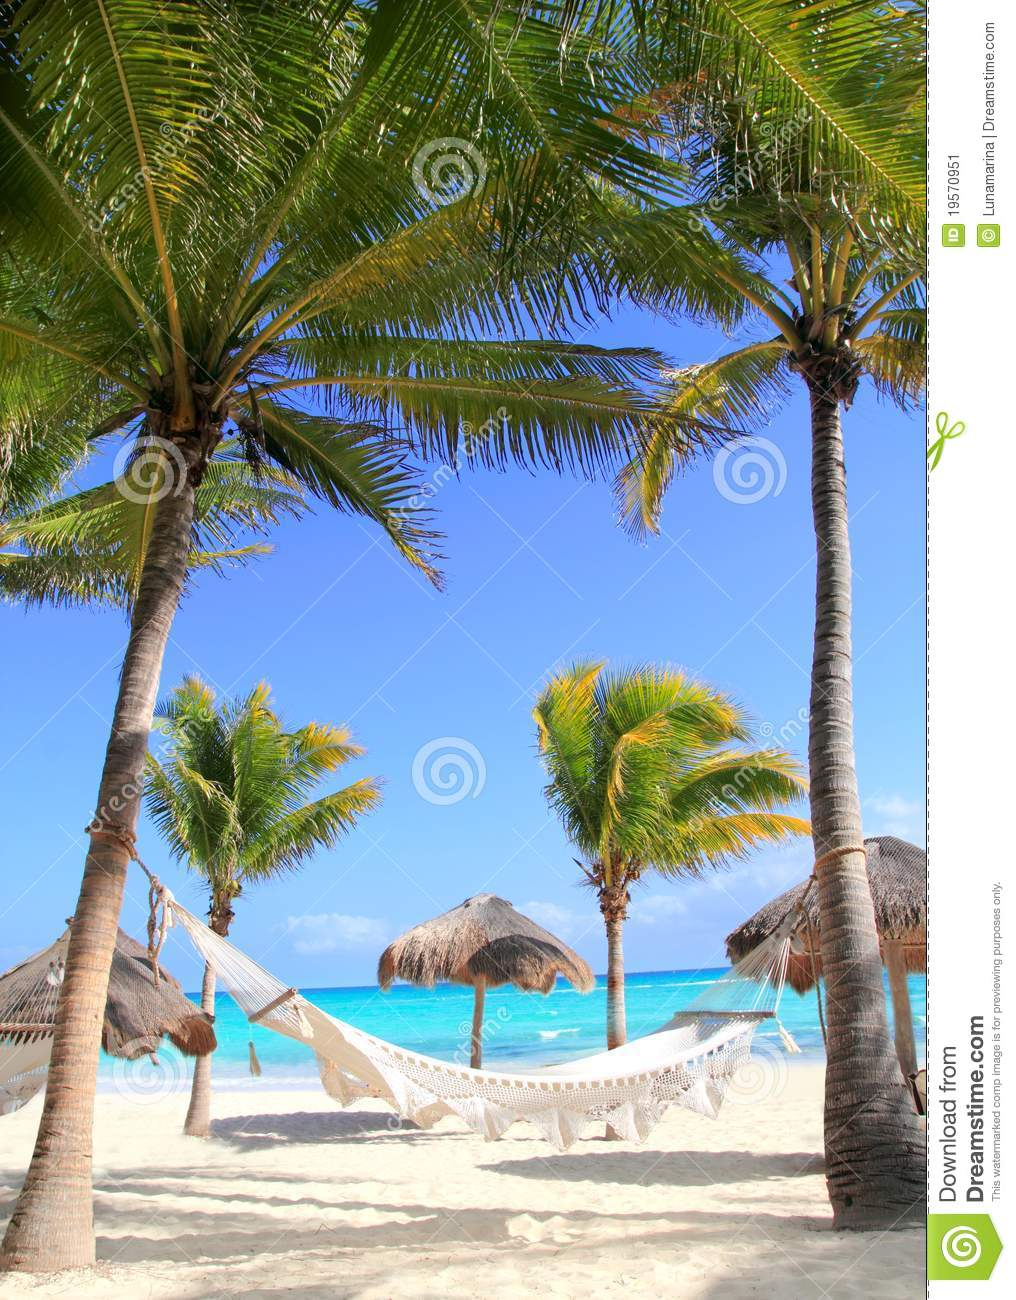 Caribbean Beach Hammock And Palm Trees Stock Image Image